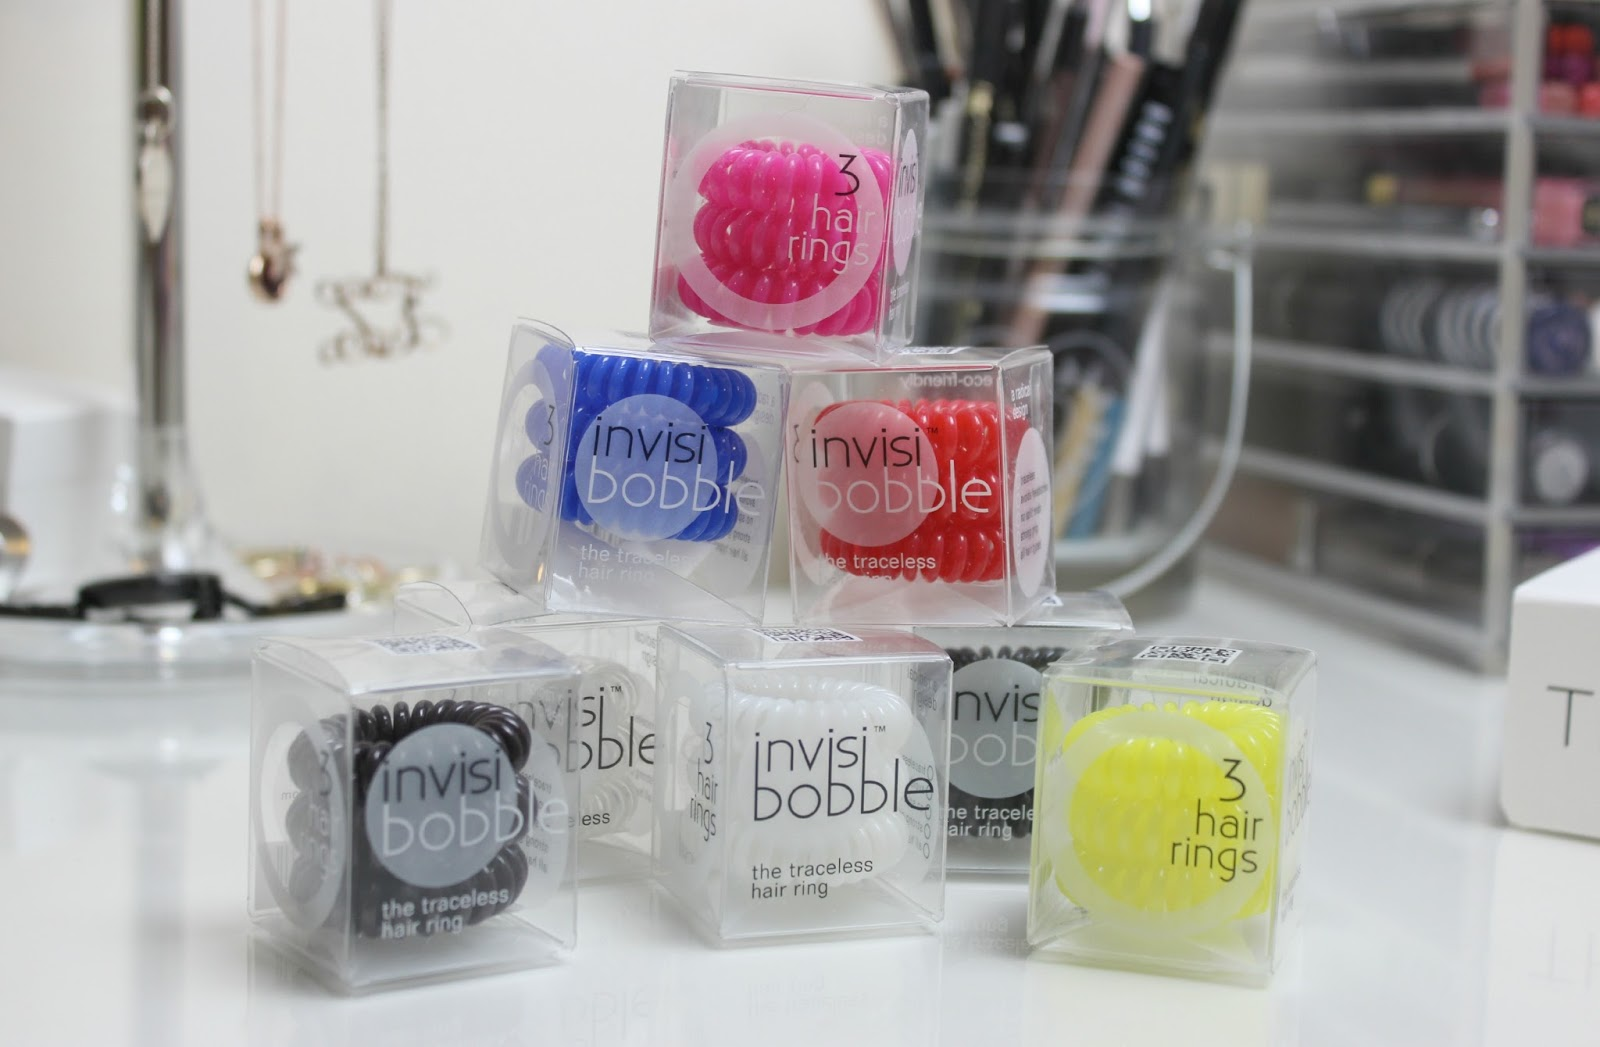 A picture of Invisibobble Traceless Hair Ring